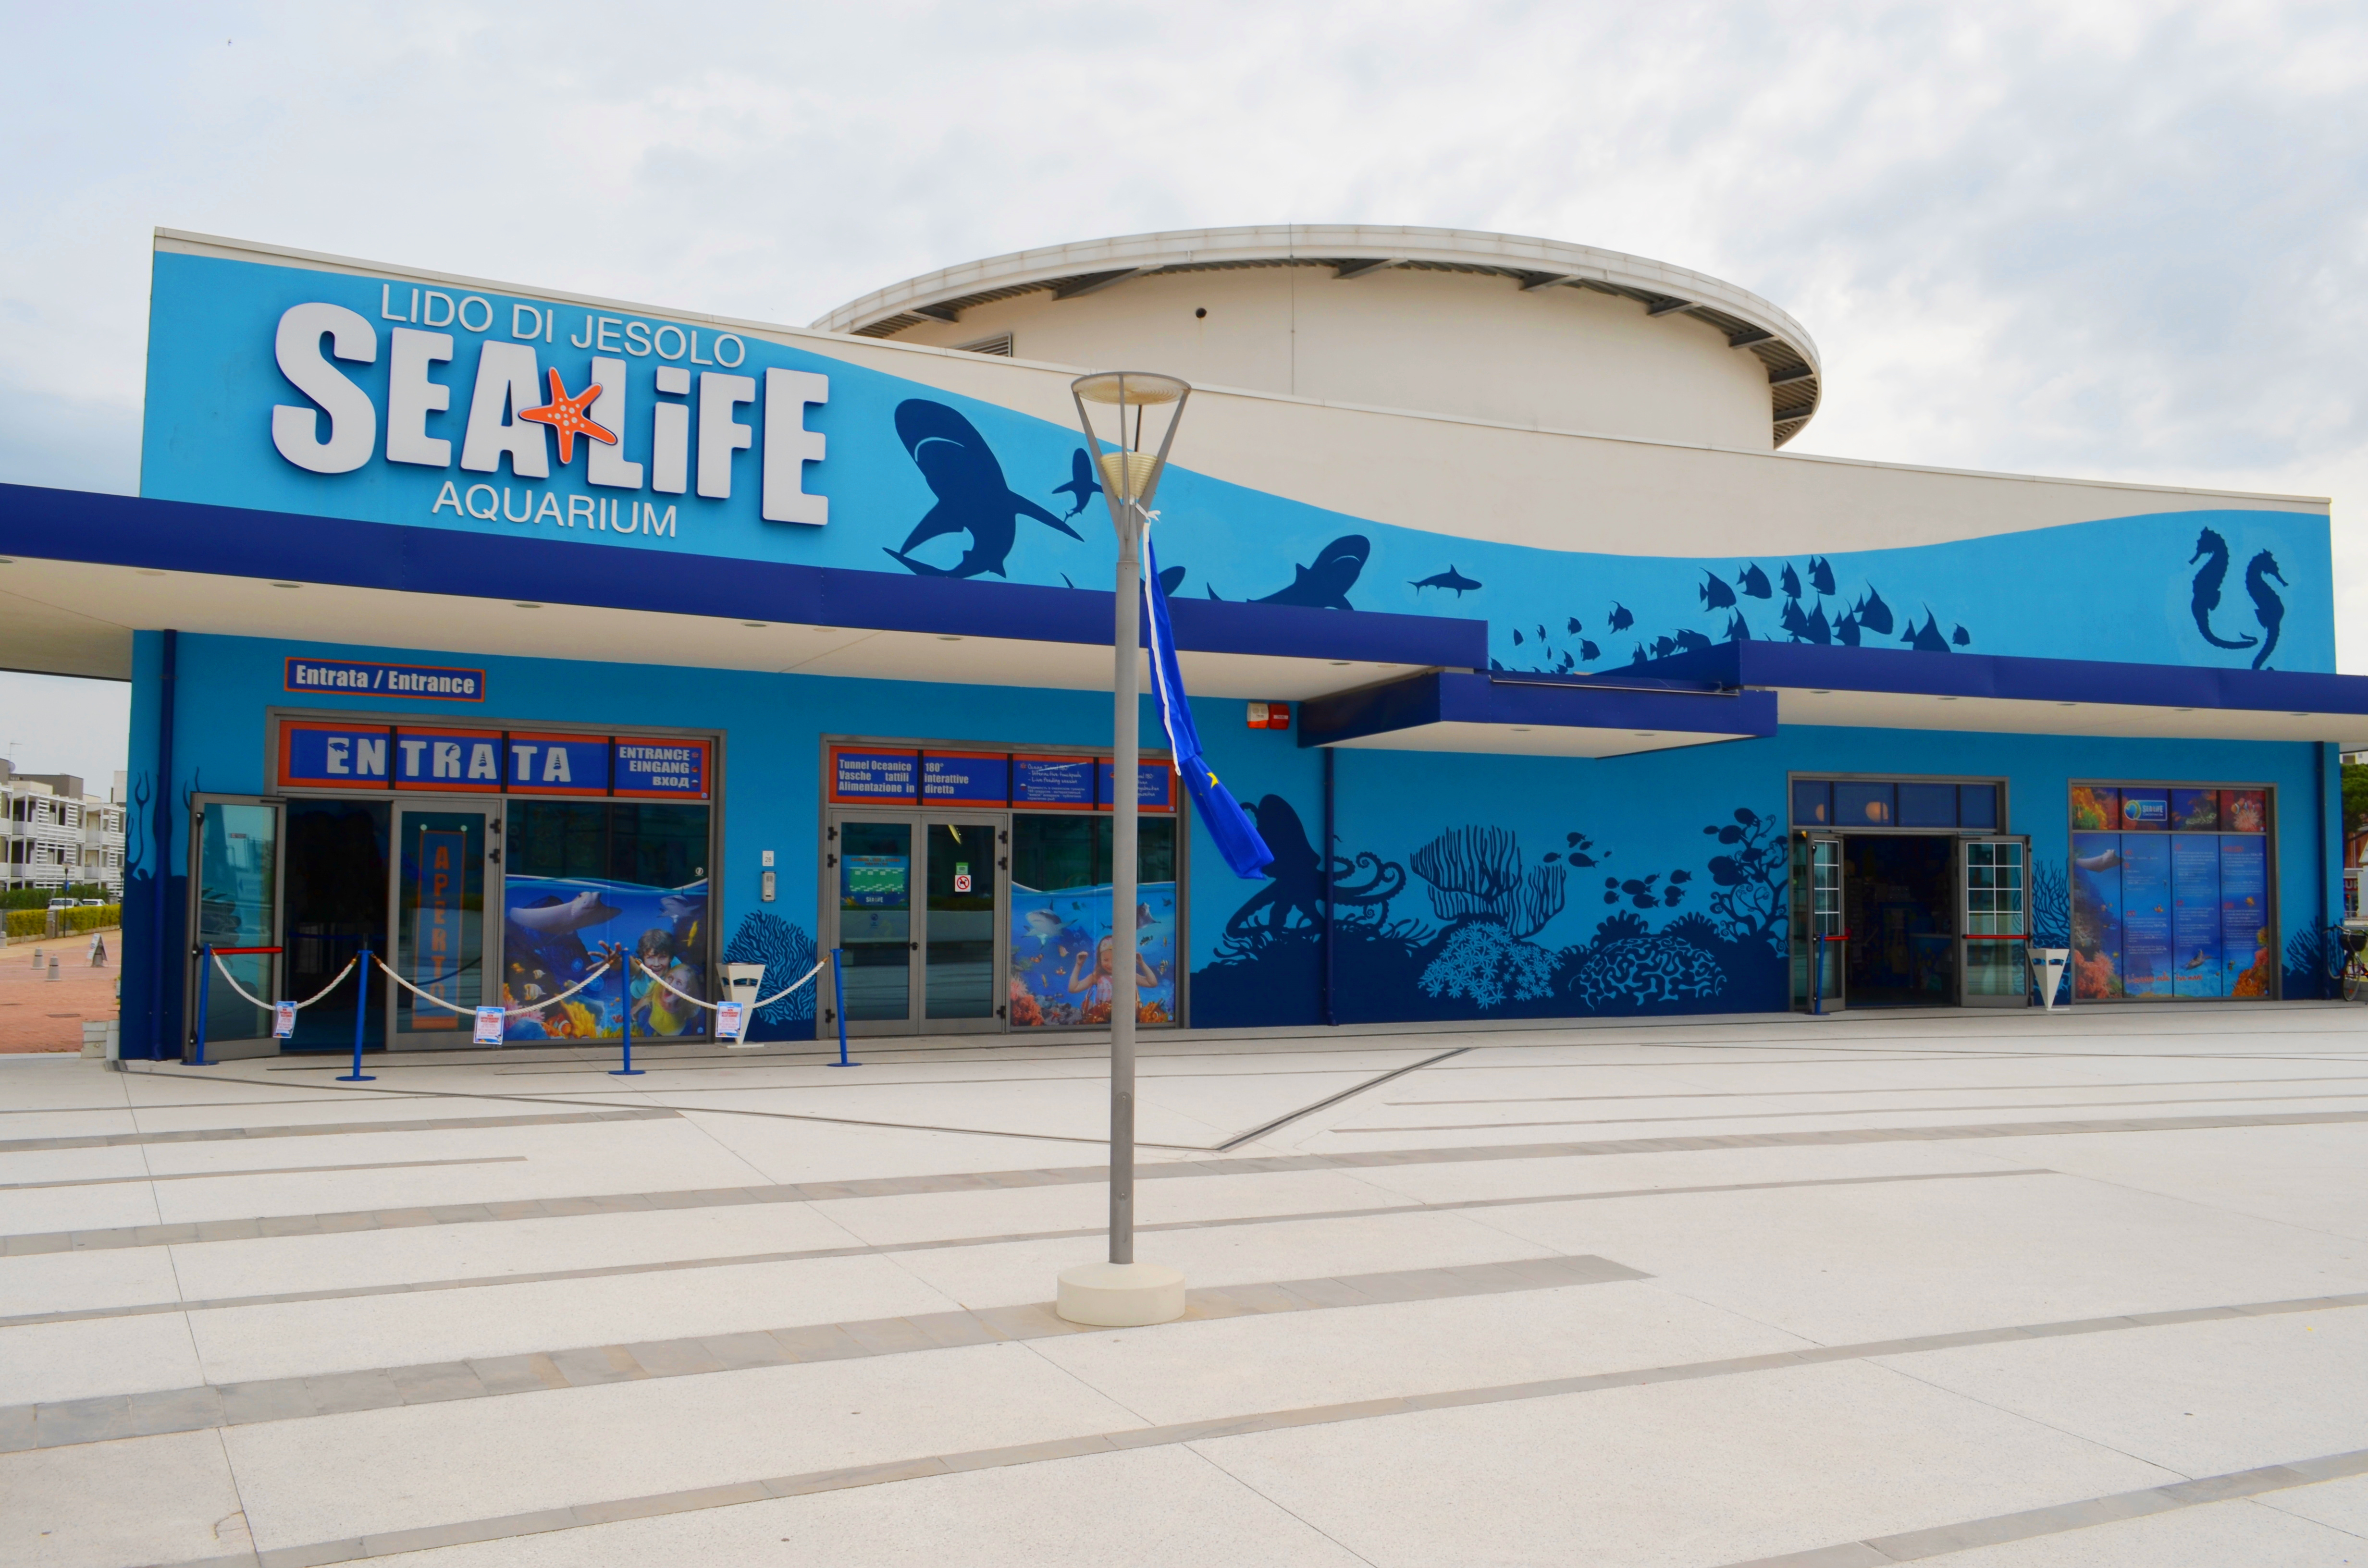 File:Sealife Aquarium in Lido di Jesolo.jpg - Wikimedia ...